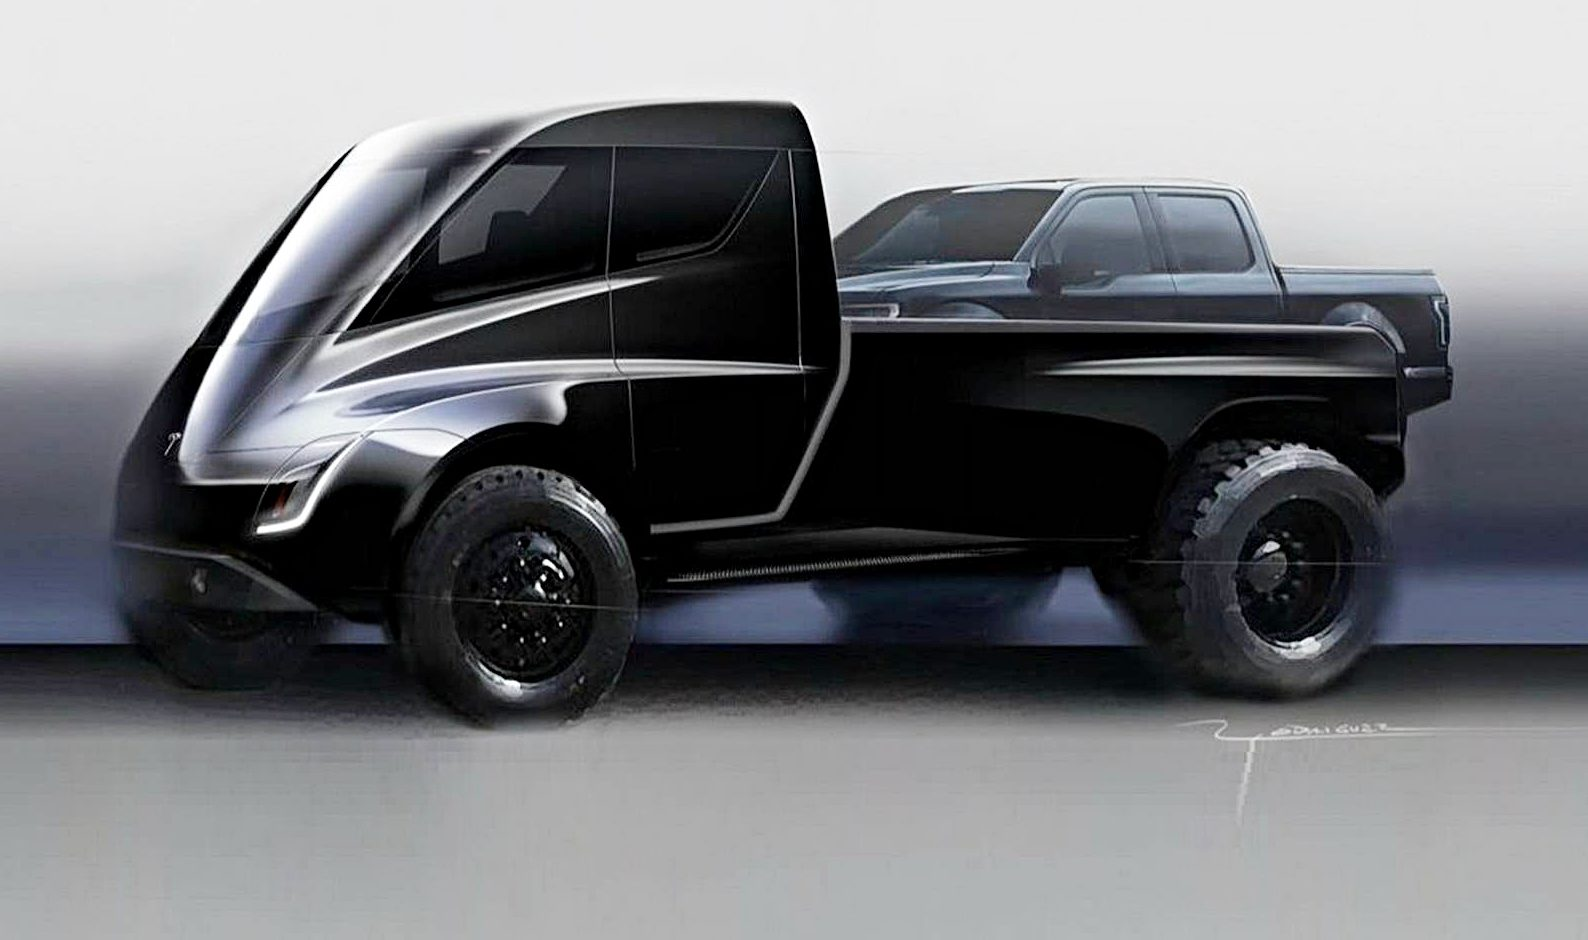 An early Tesla Pickup truck illustration carrying a Ford F-150 pickup truck on the back.